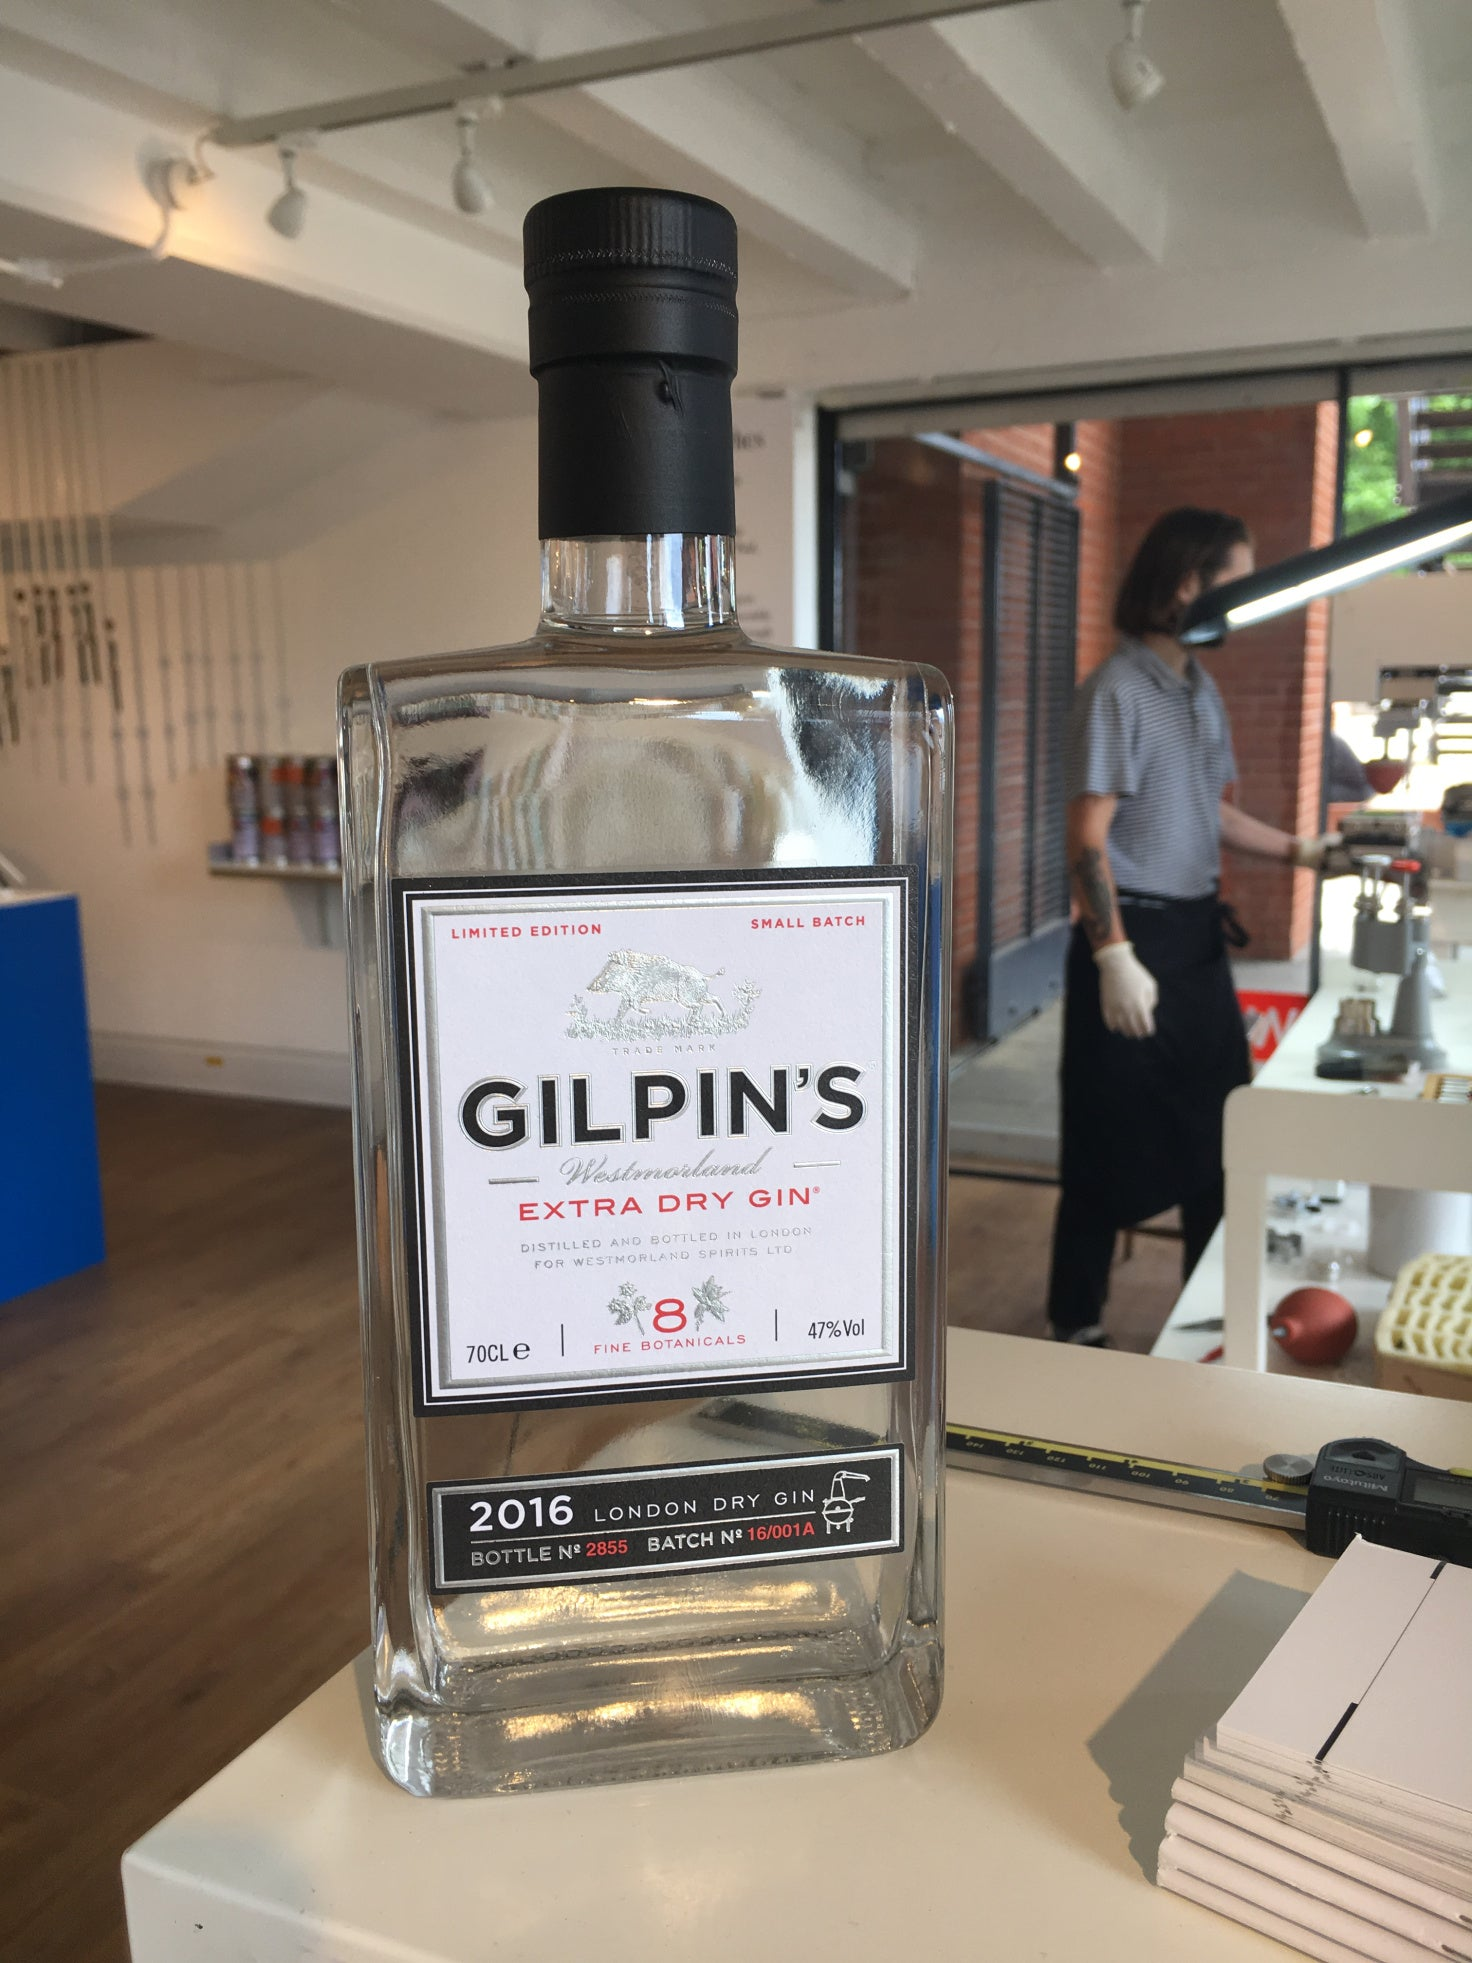 Gilpin's gin sponsored the event